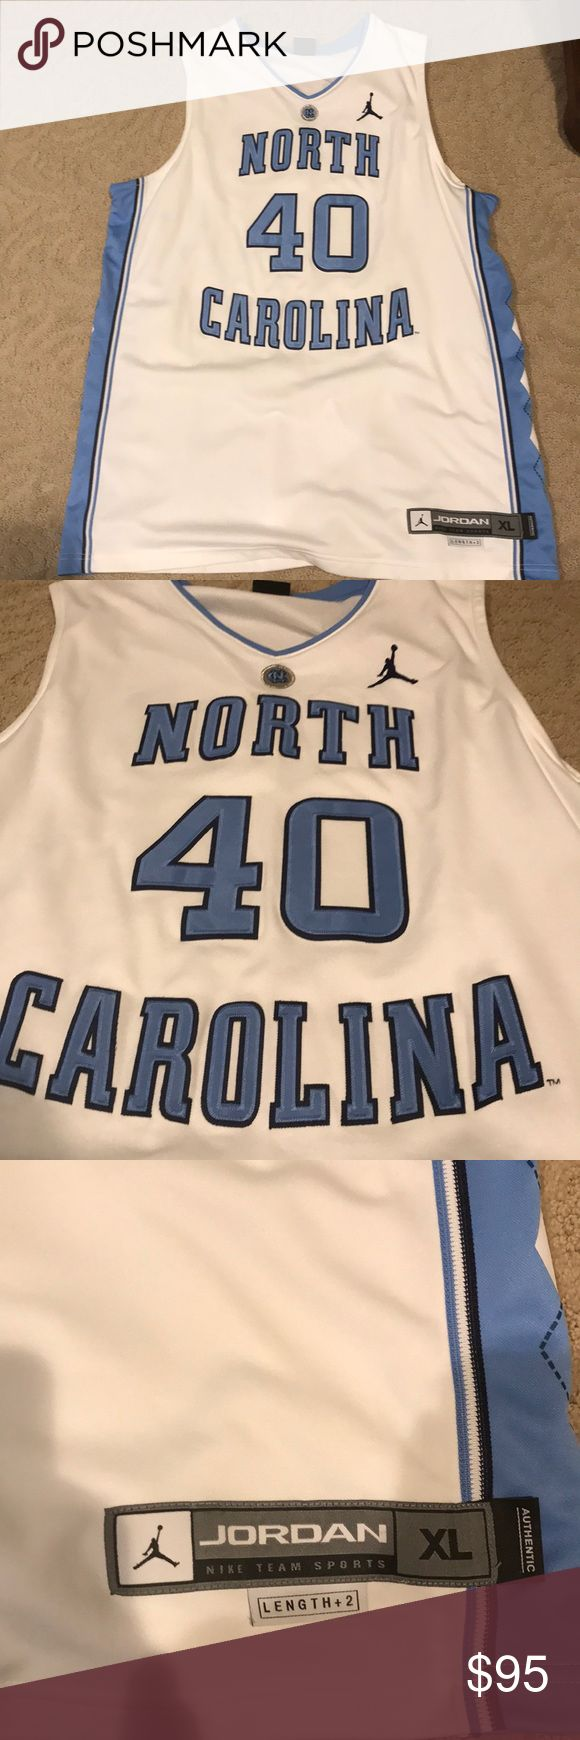 Jordan Brand UNC Harrison Barnes Jersey (men's XL) Never worn, perfect condition. Dri-fit mesh jersey with stitched lettering. Jordan Other